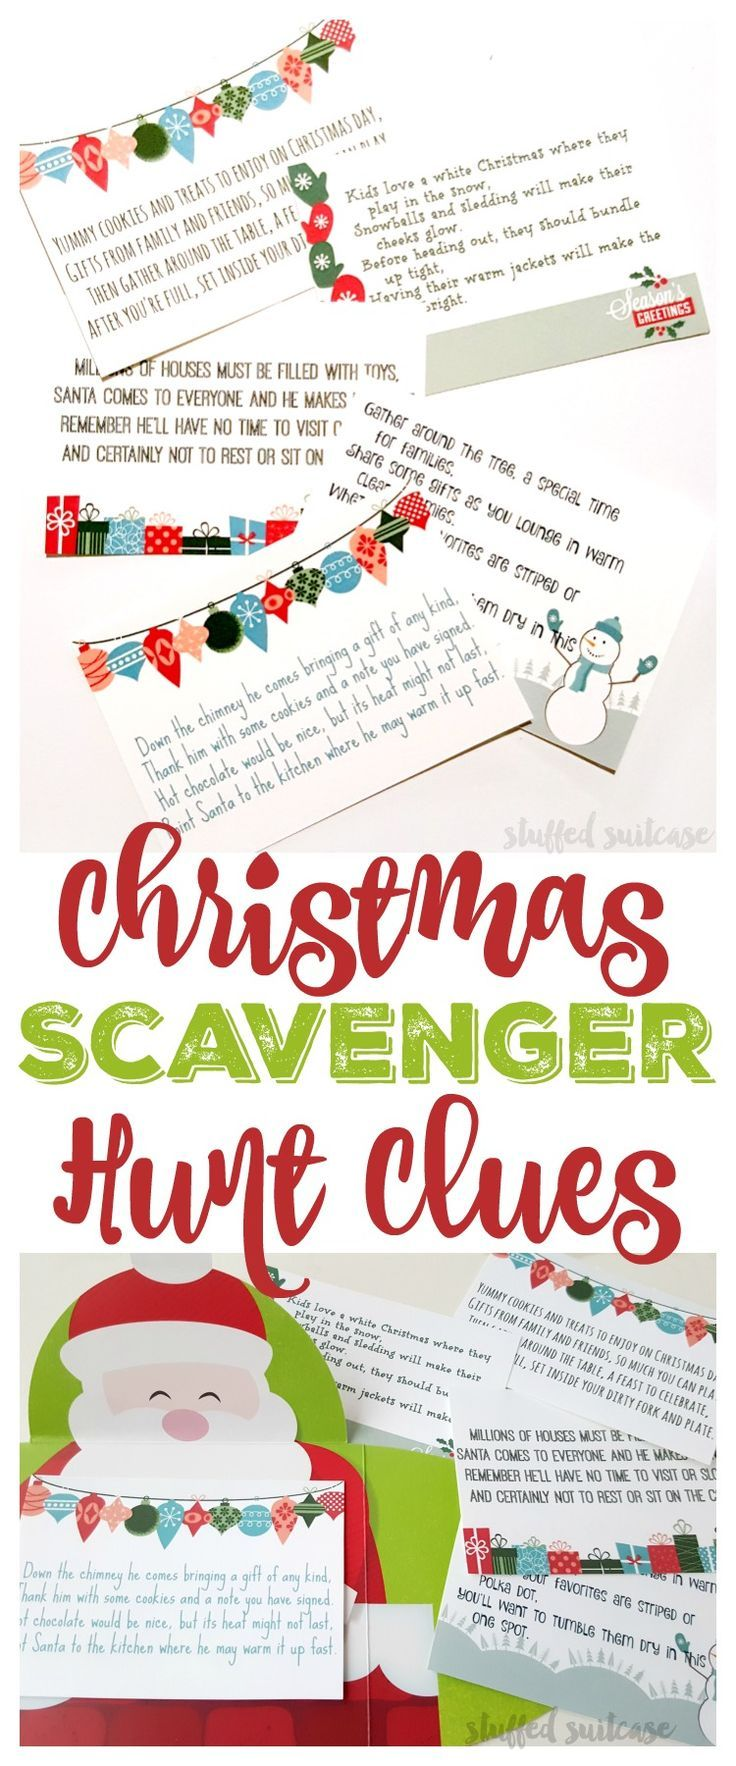 Christmas Scavenger Hunt Riddles and Clues | joy to the world ...